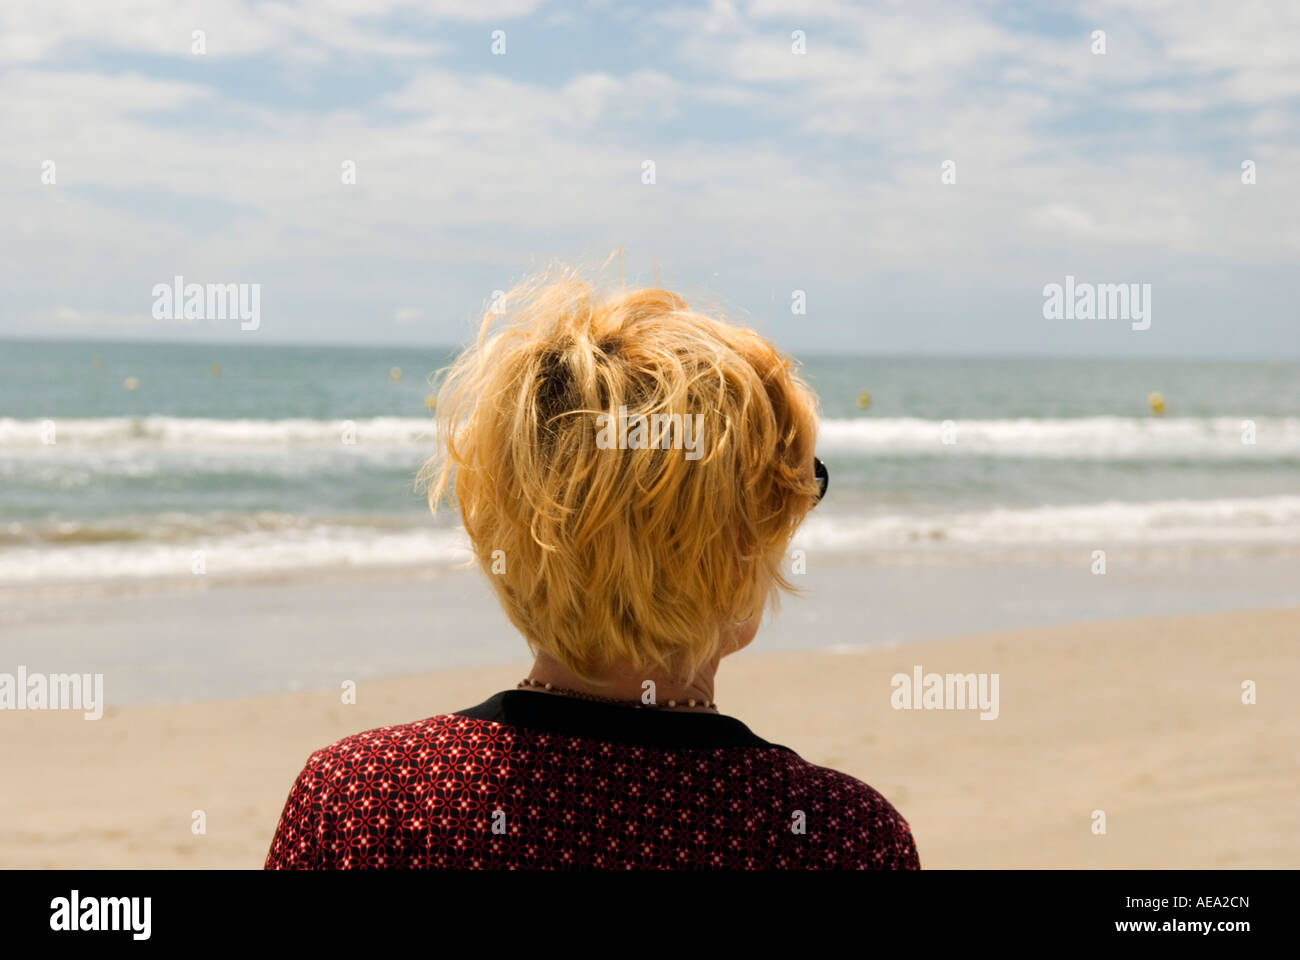 a lone strawberry blonde woman looks away from camera towards the sea and beach - Stock Image